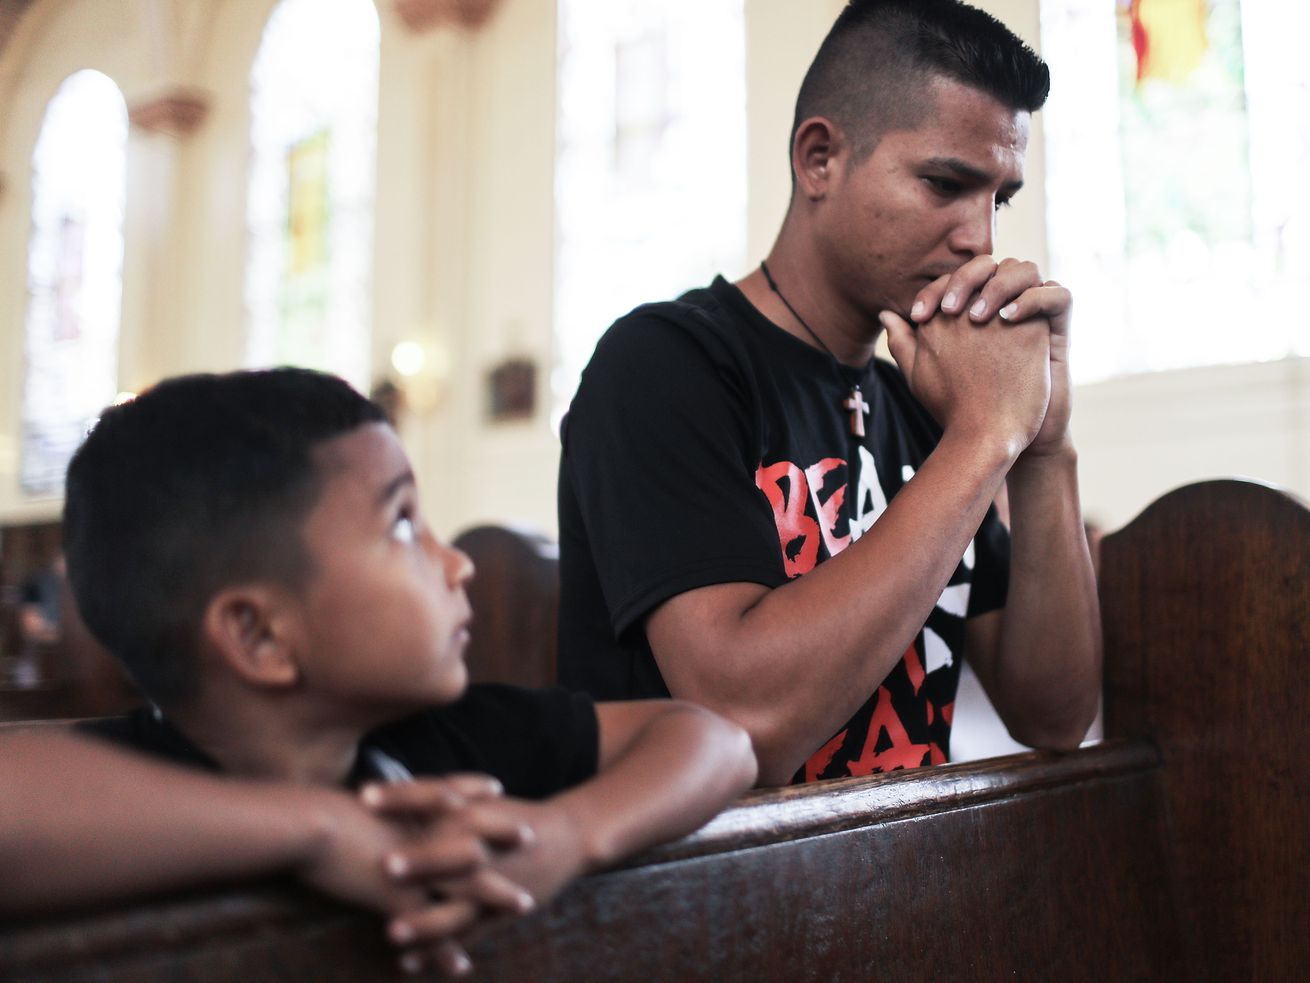 Honduran father Juan and his 6-year-old son Anthony, who fled their country and were separated at the border.